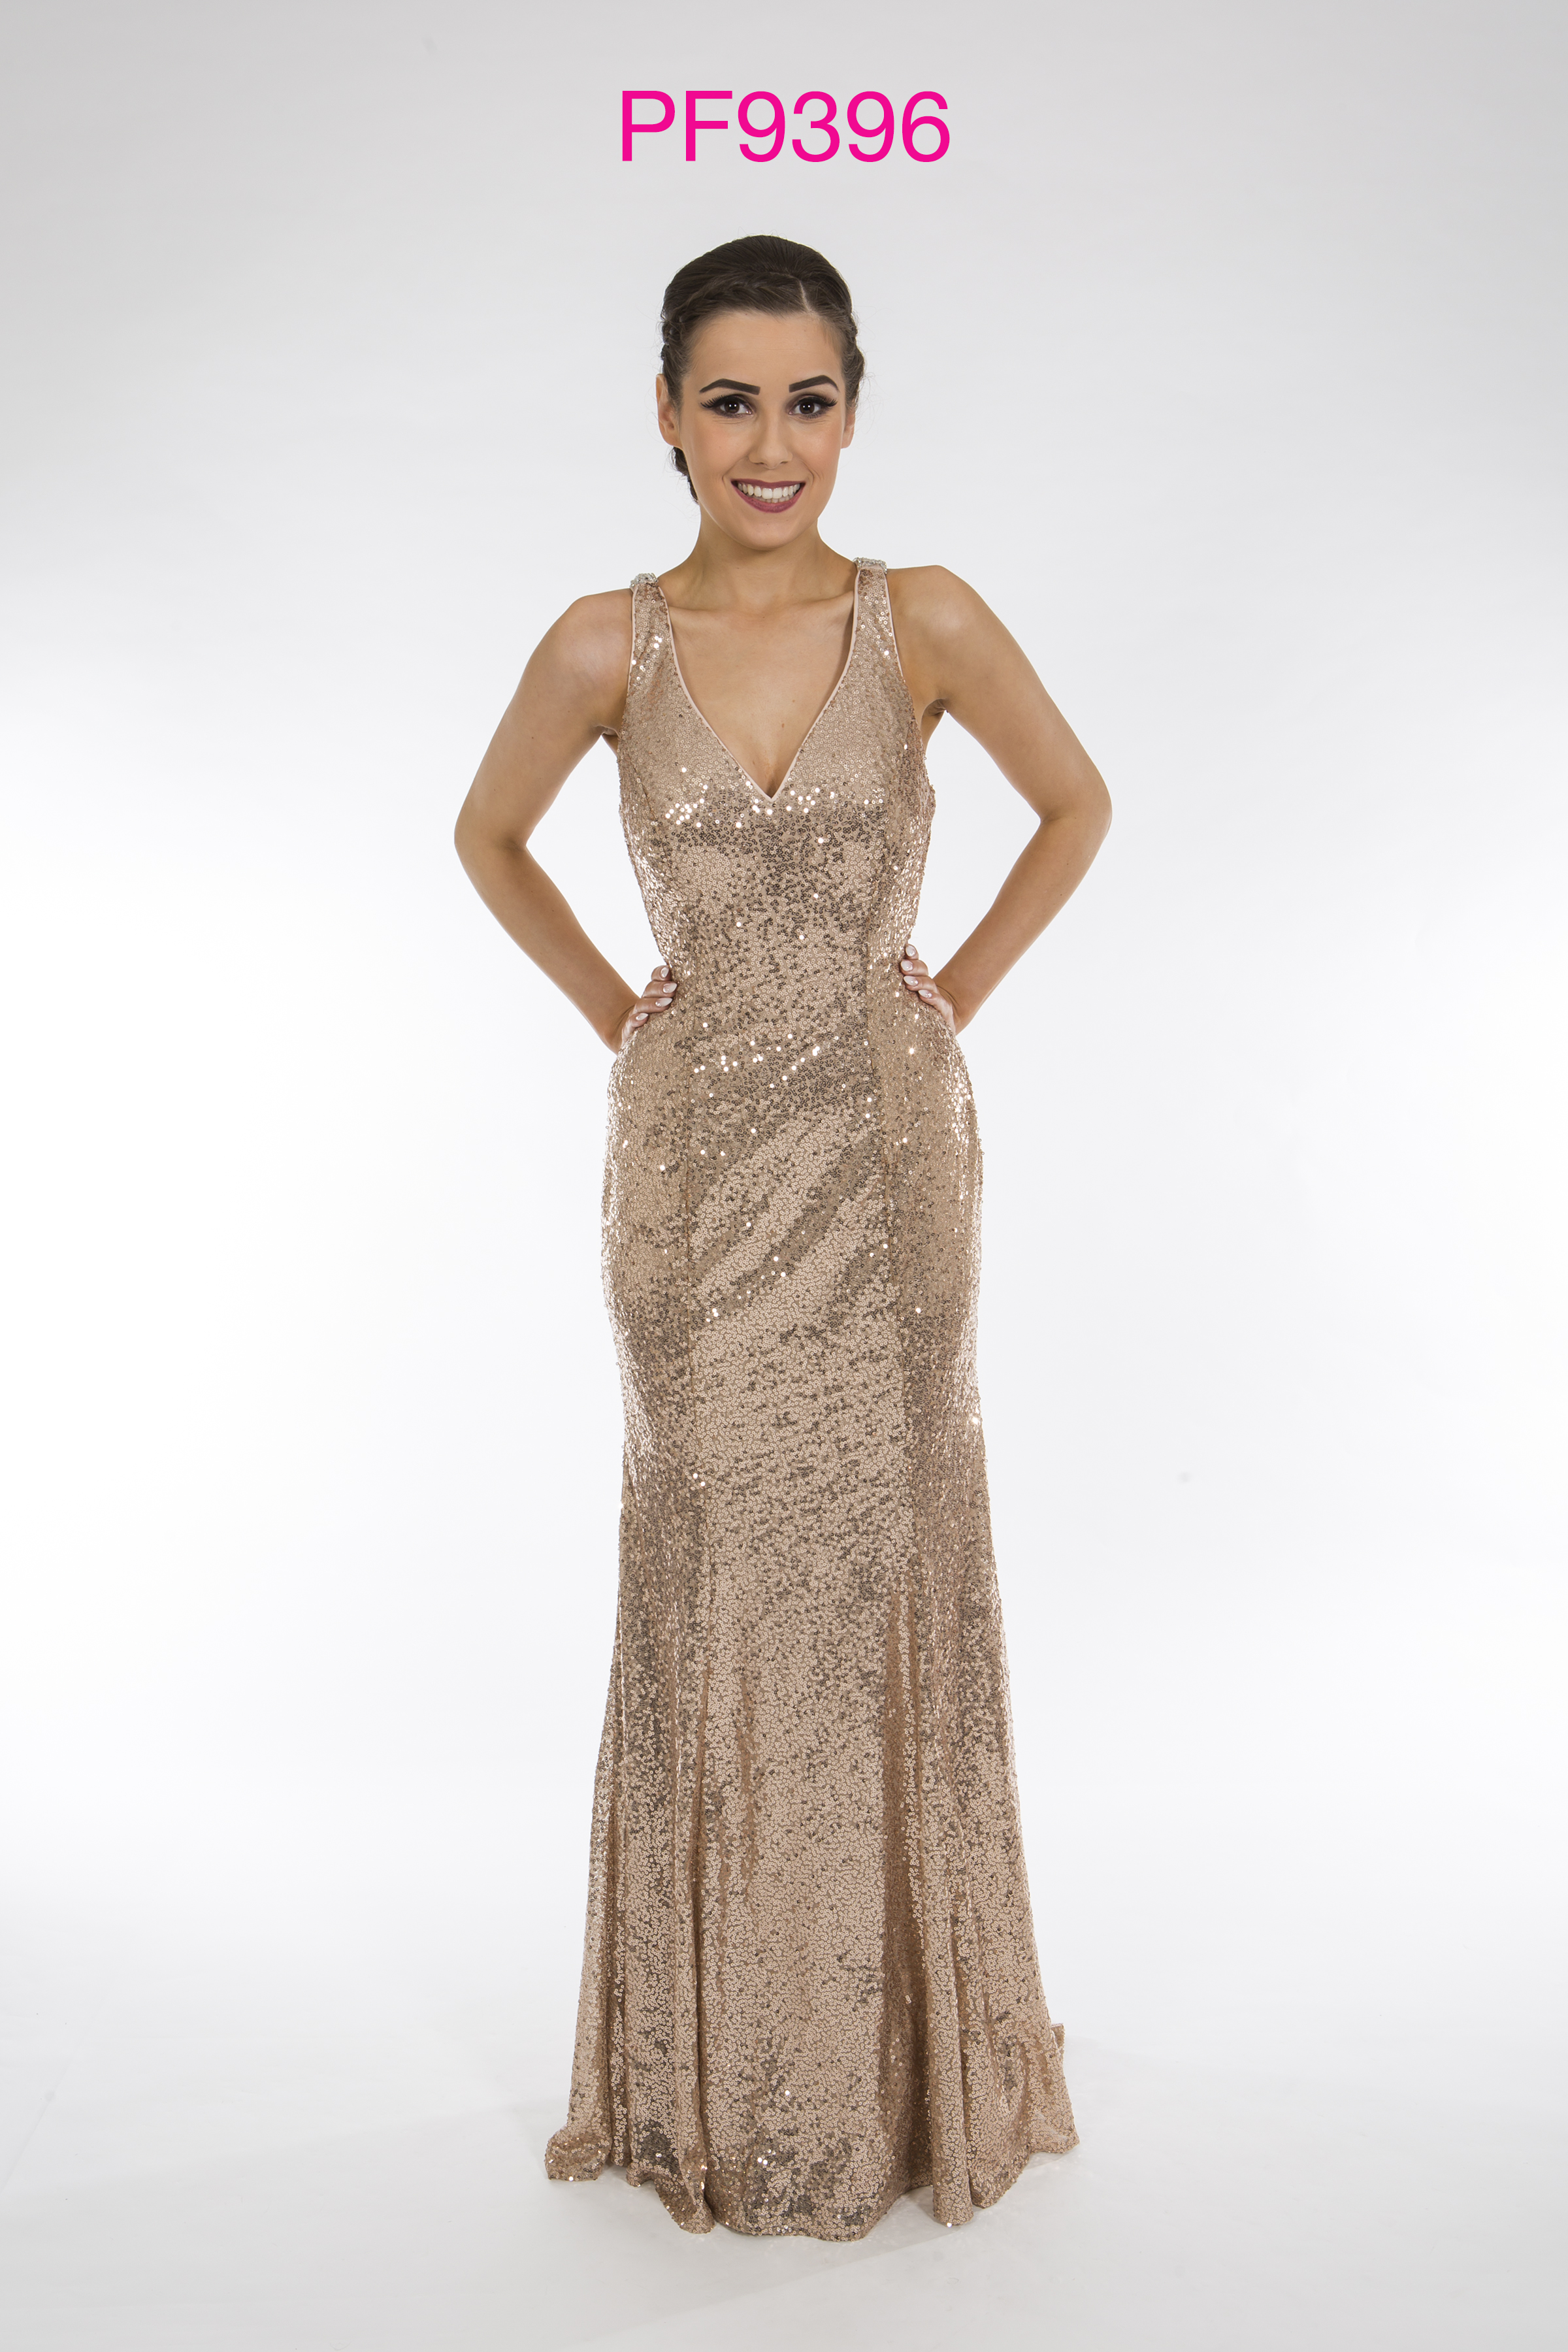 Look simply stunning in prom dresses from top fashion label Chi Chi London. Paypal and Visa Electron accepted. 10% off your first order.